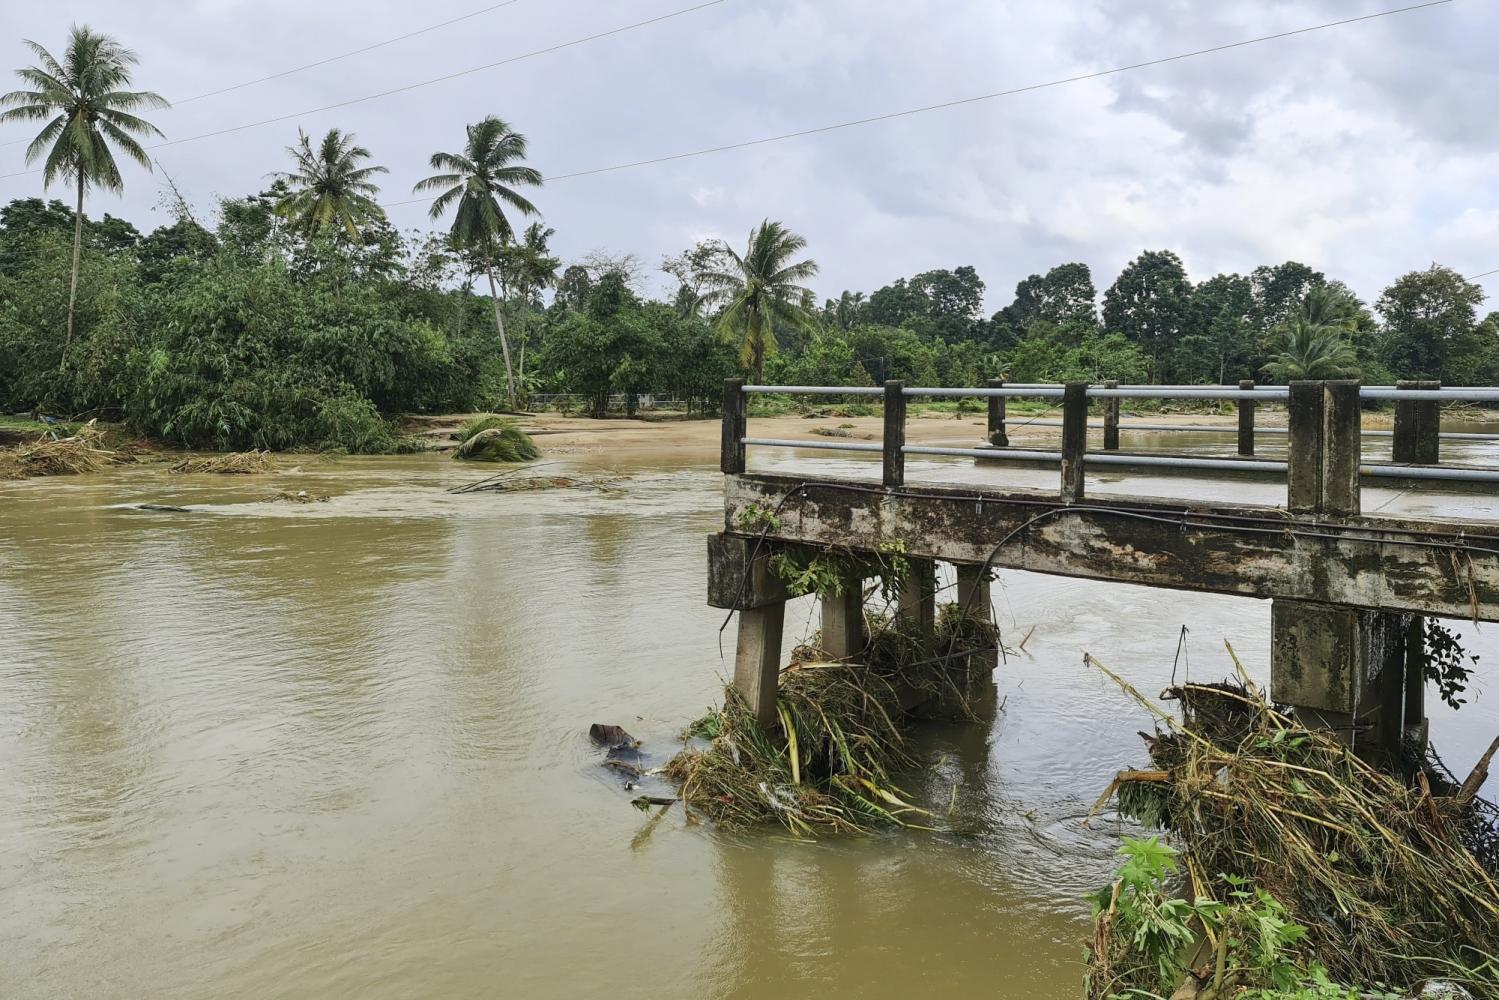 A bridge crossing the Tha Di canal in Lan Saka district, Nakhon Si Thammarat, has collapsed due to major flooding that has ravaged the province since Wednesday. (Photo courtesy of Nakhon Si Thammarat Facebook page)